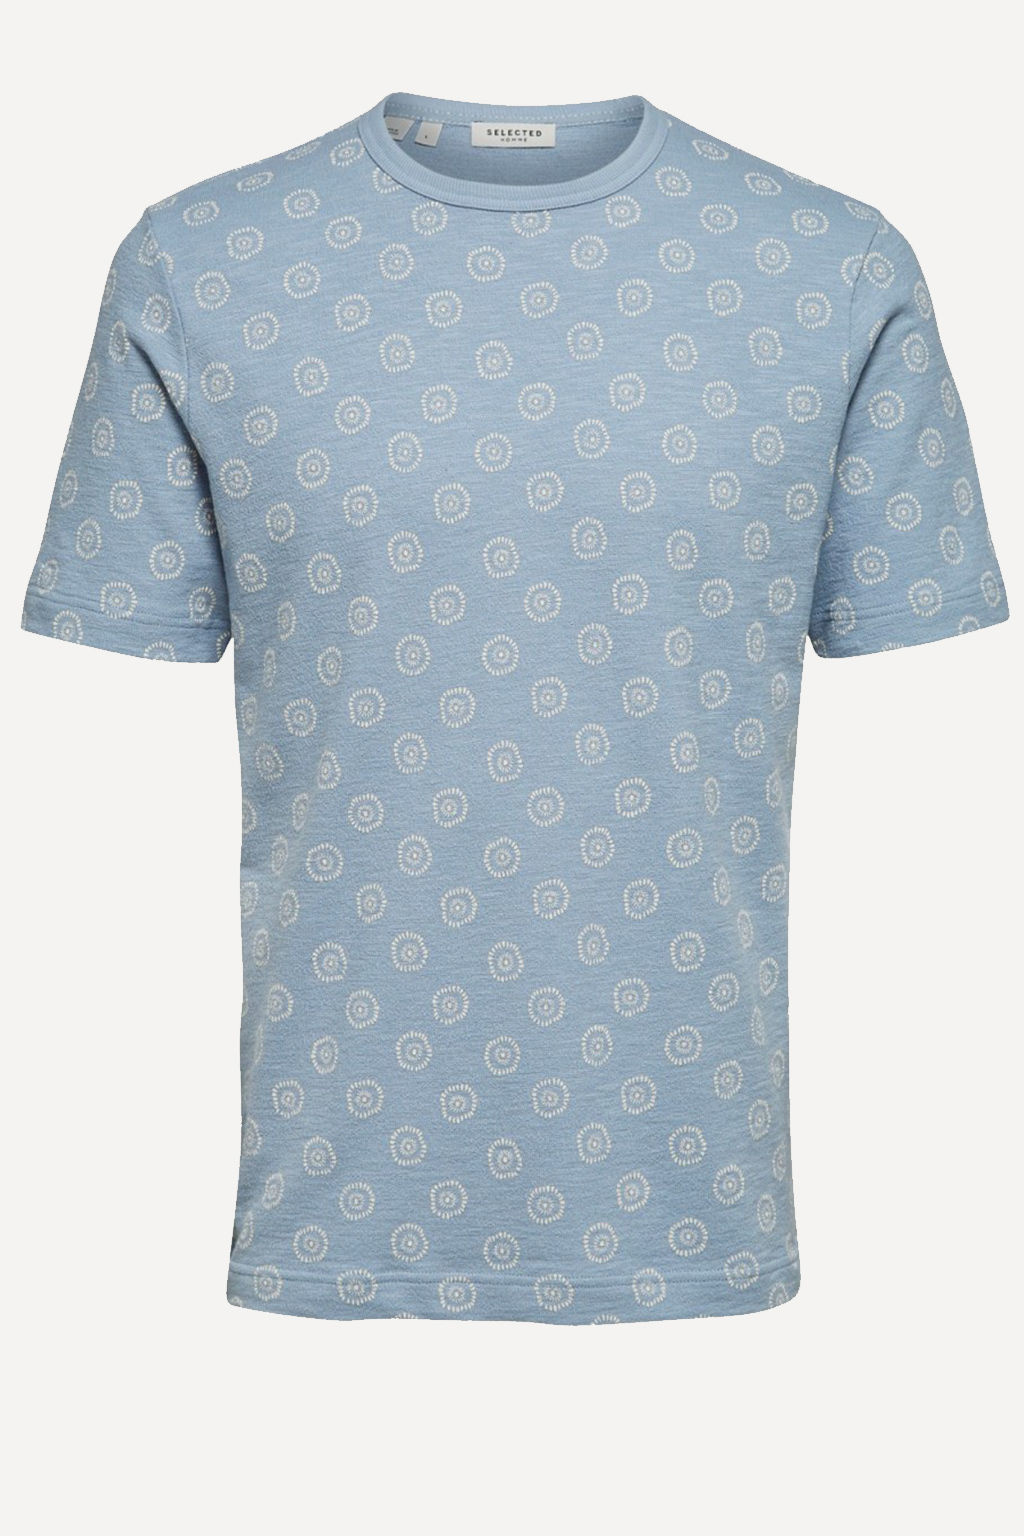 SELECTED t shirt homme-1